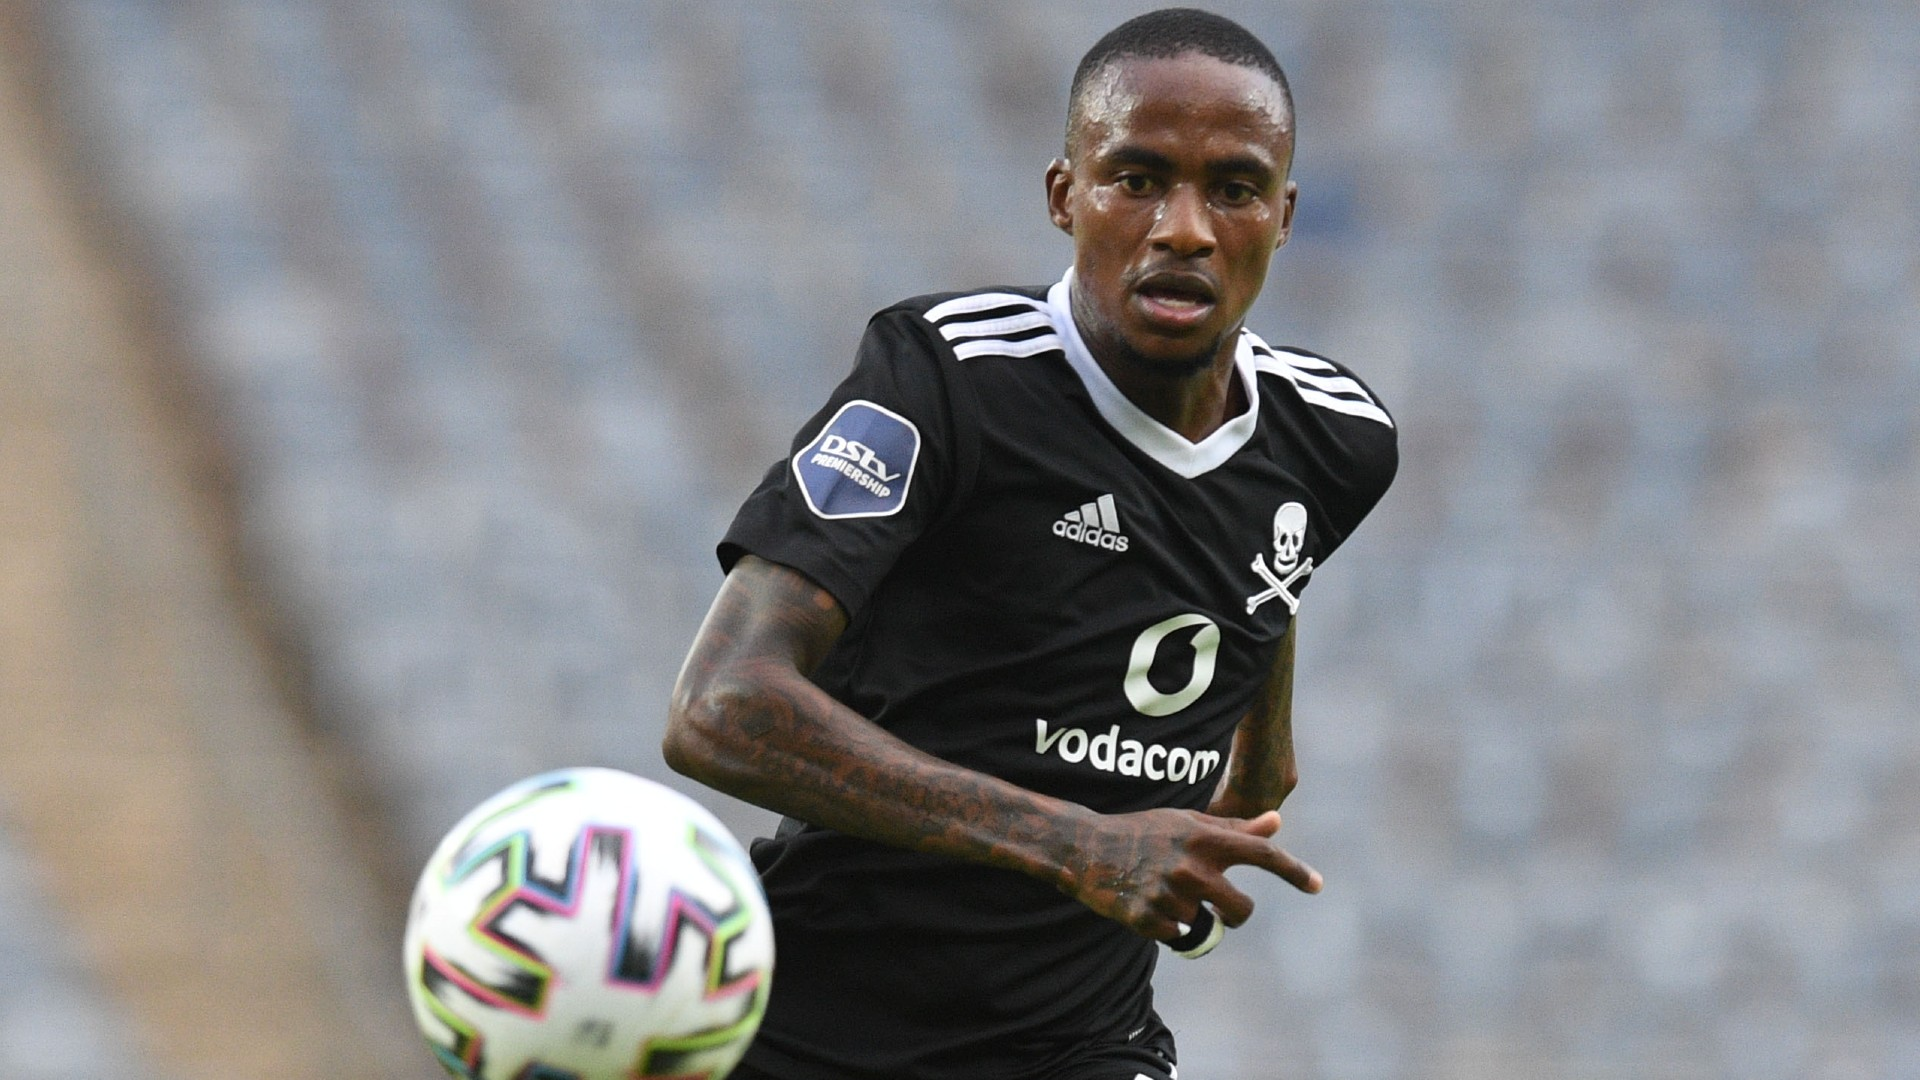 Orlando Pirates' Lorch should just tell himself 'when one door closes, another opens' - Vilakazi